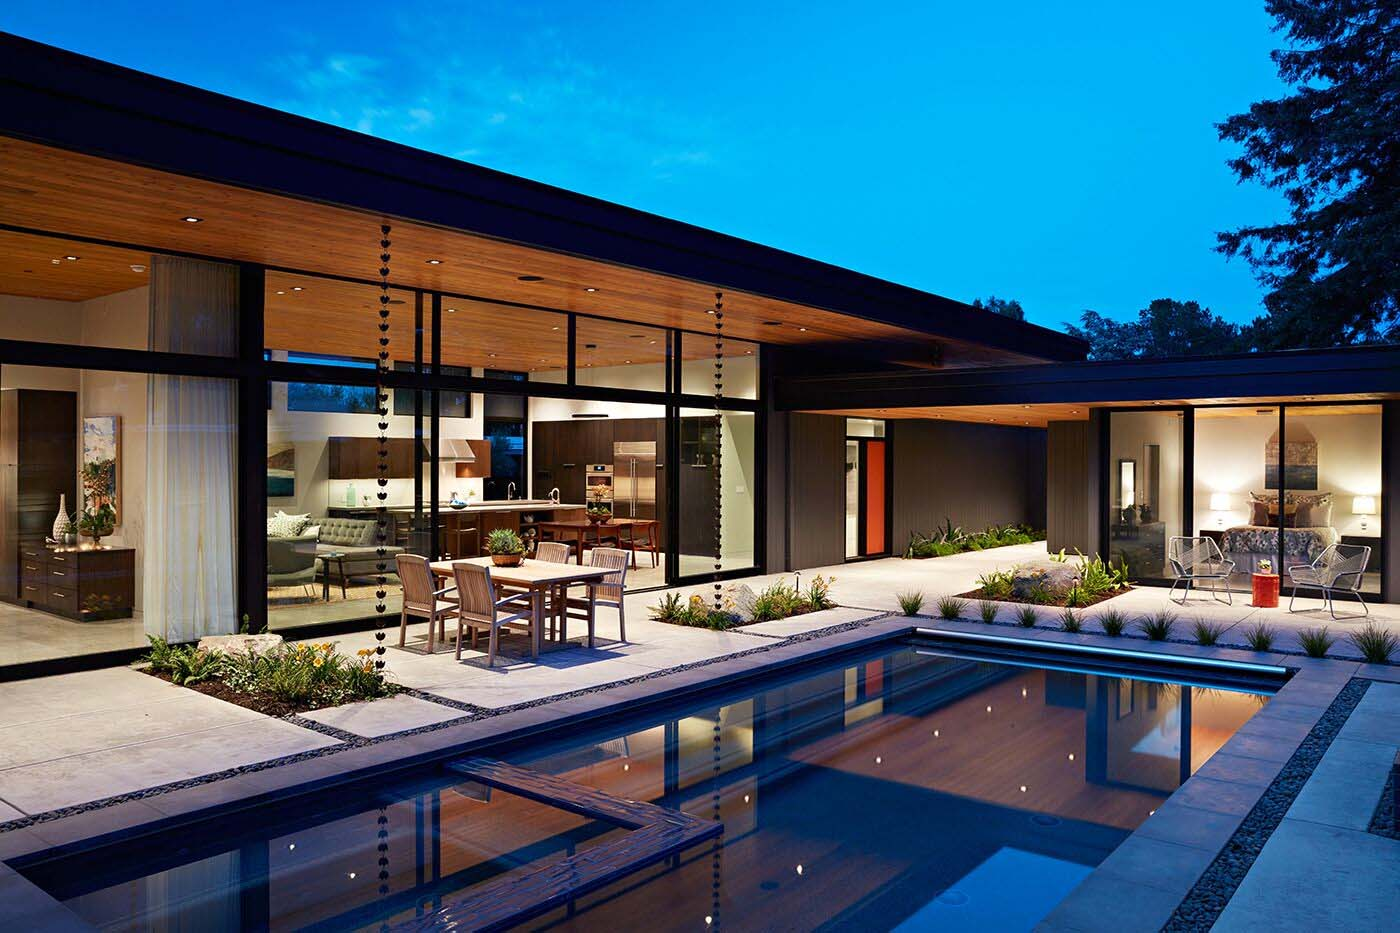 California Modern Architecture Eichler Inspired Home In California Opens To The Outdoors